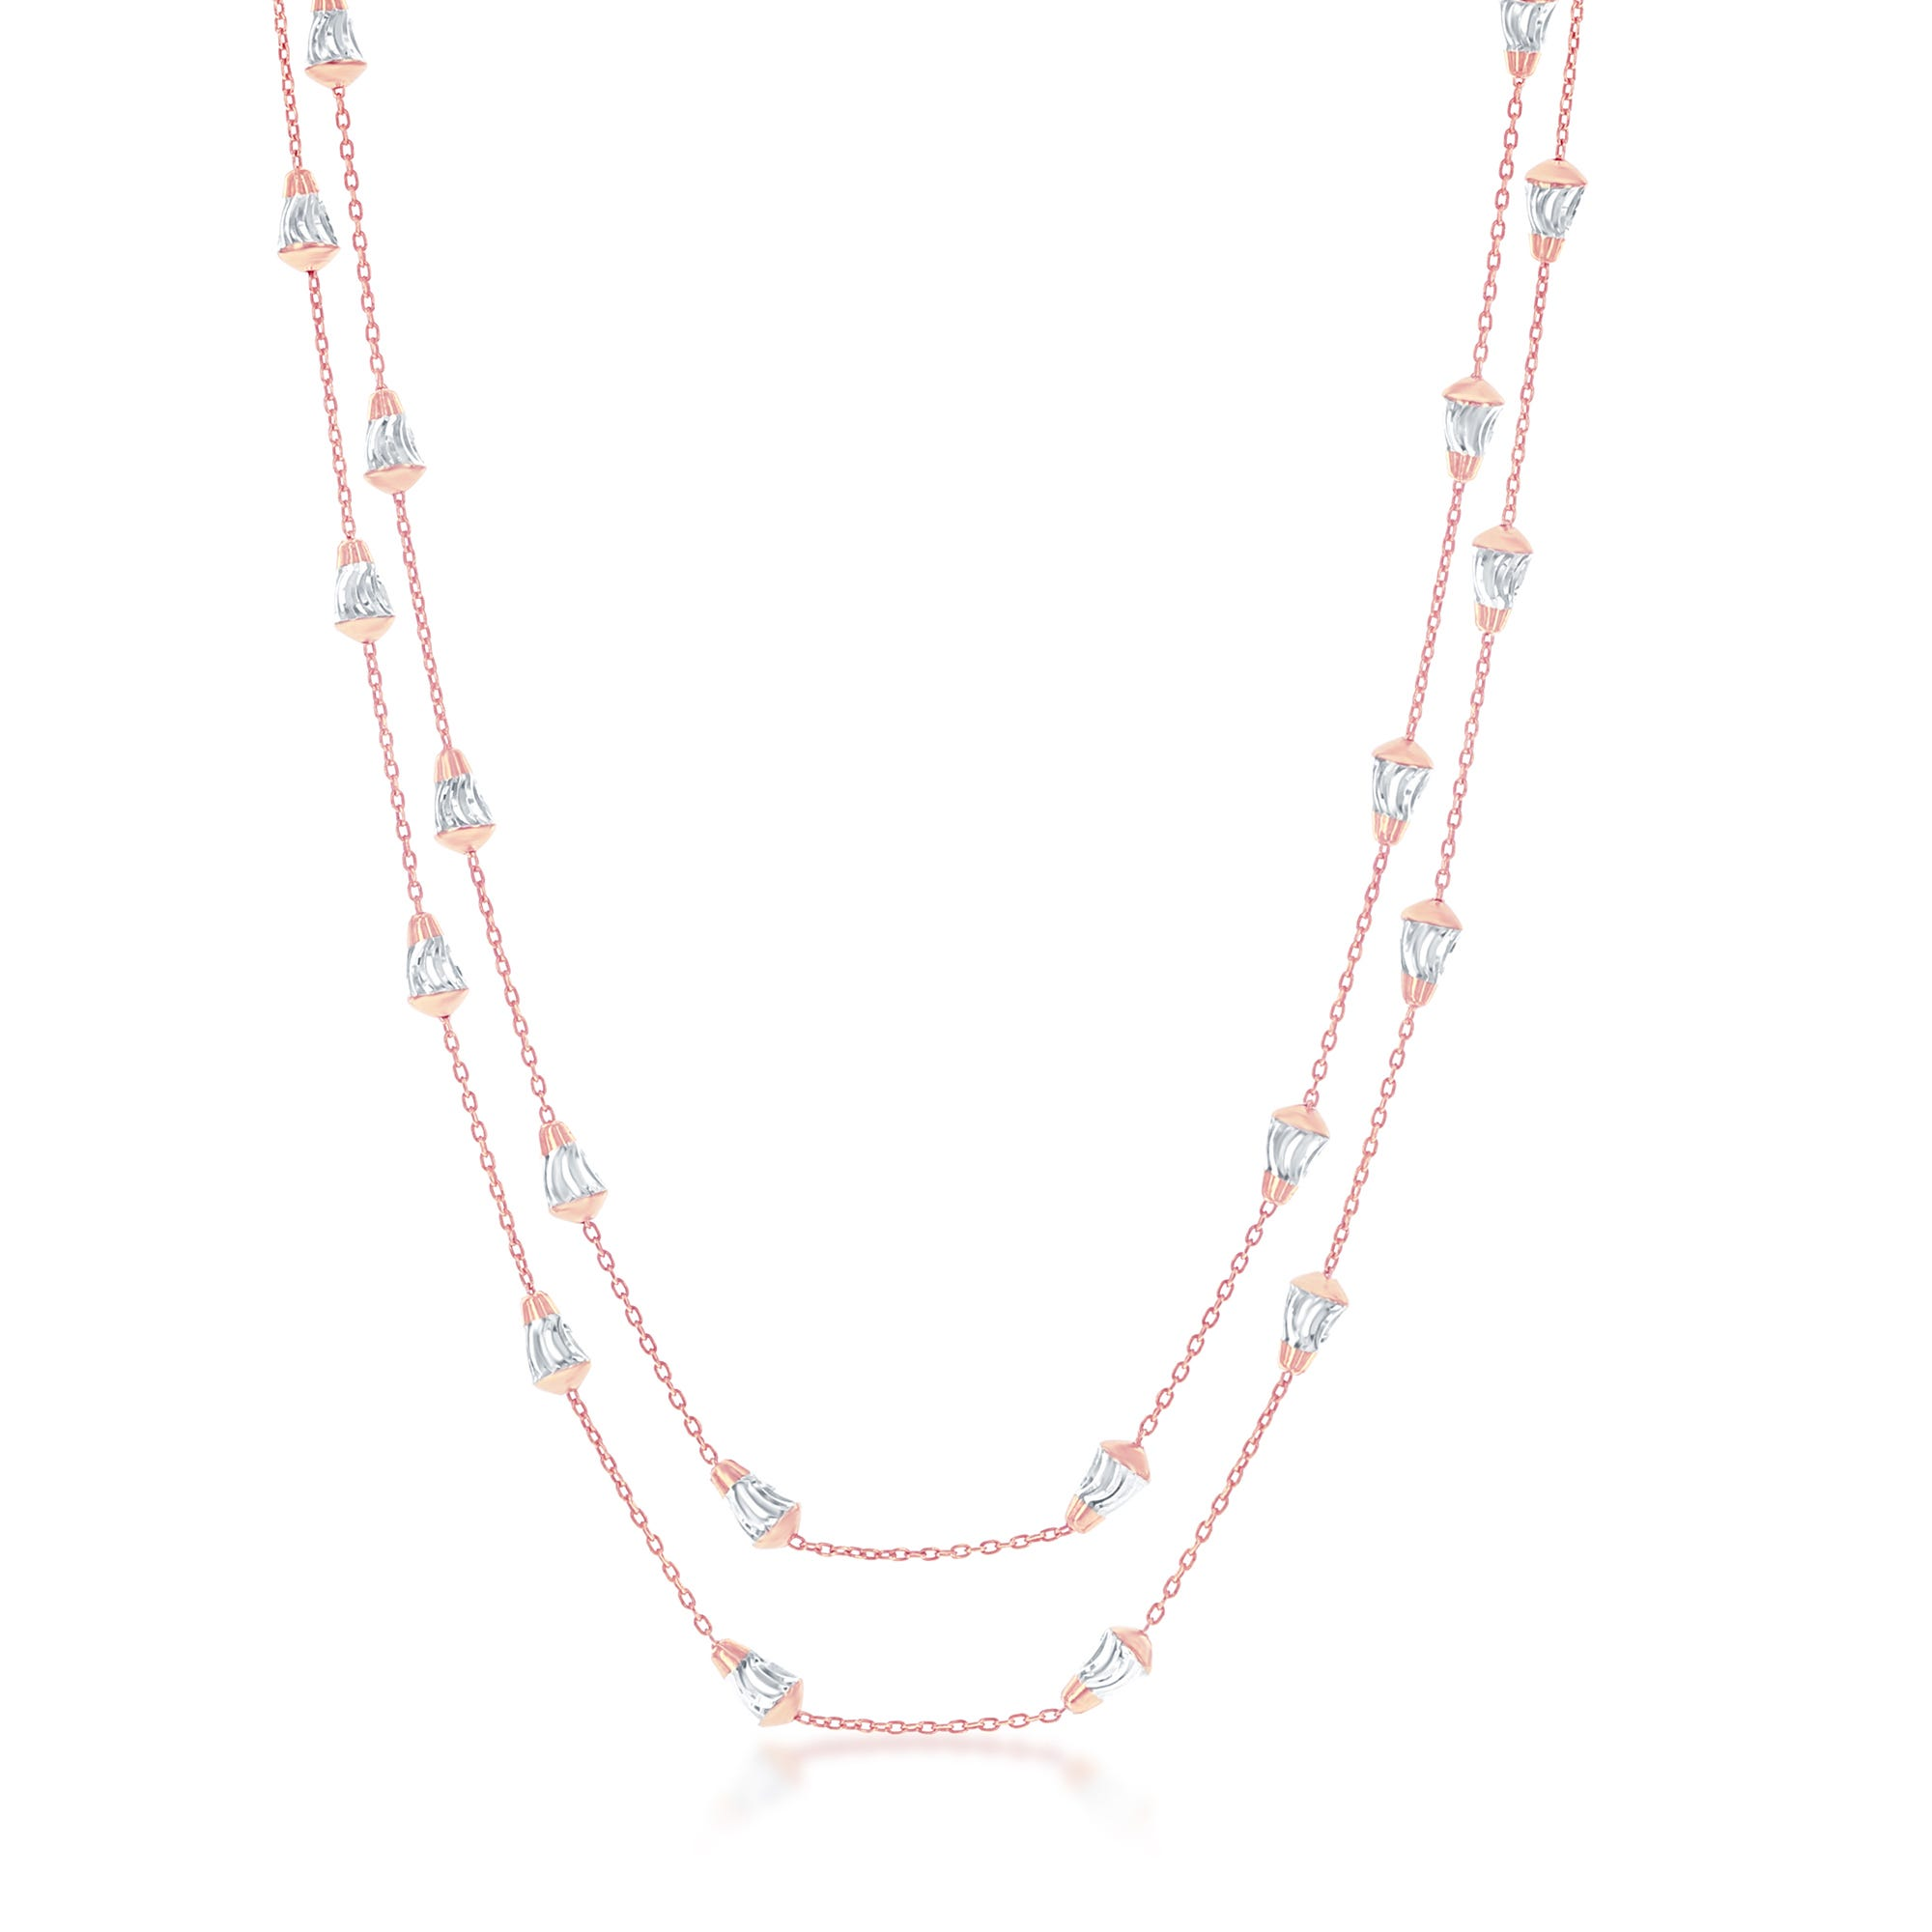 Diamond Cut Cone-Shaped Bead Chain in Sterling Silver/Rose Gold Plated